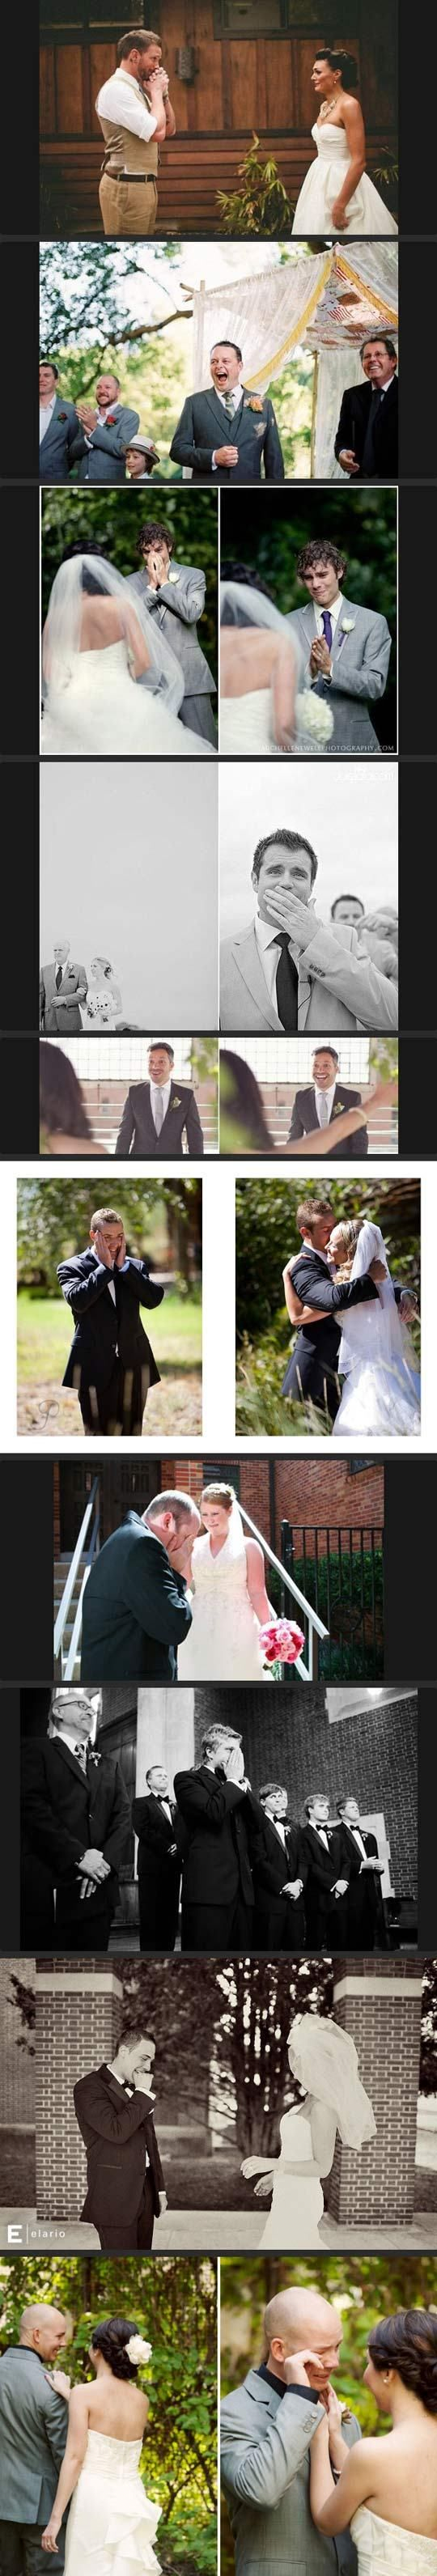 Grooms Seeing Their Brides, so sweet